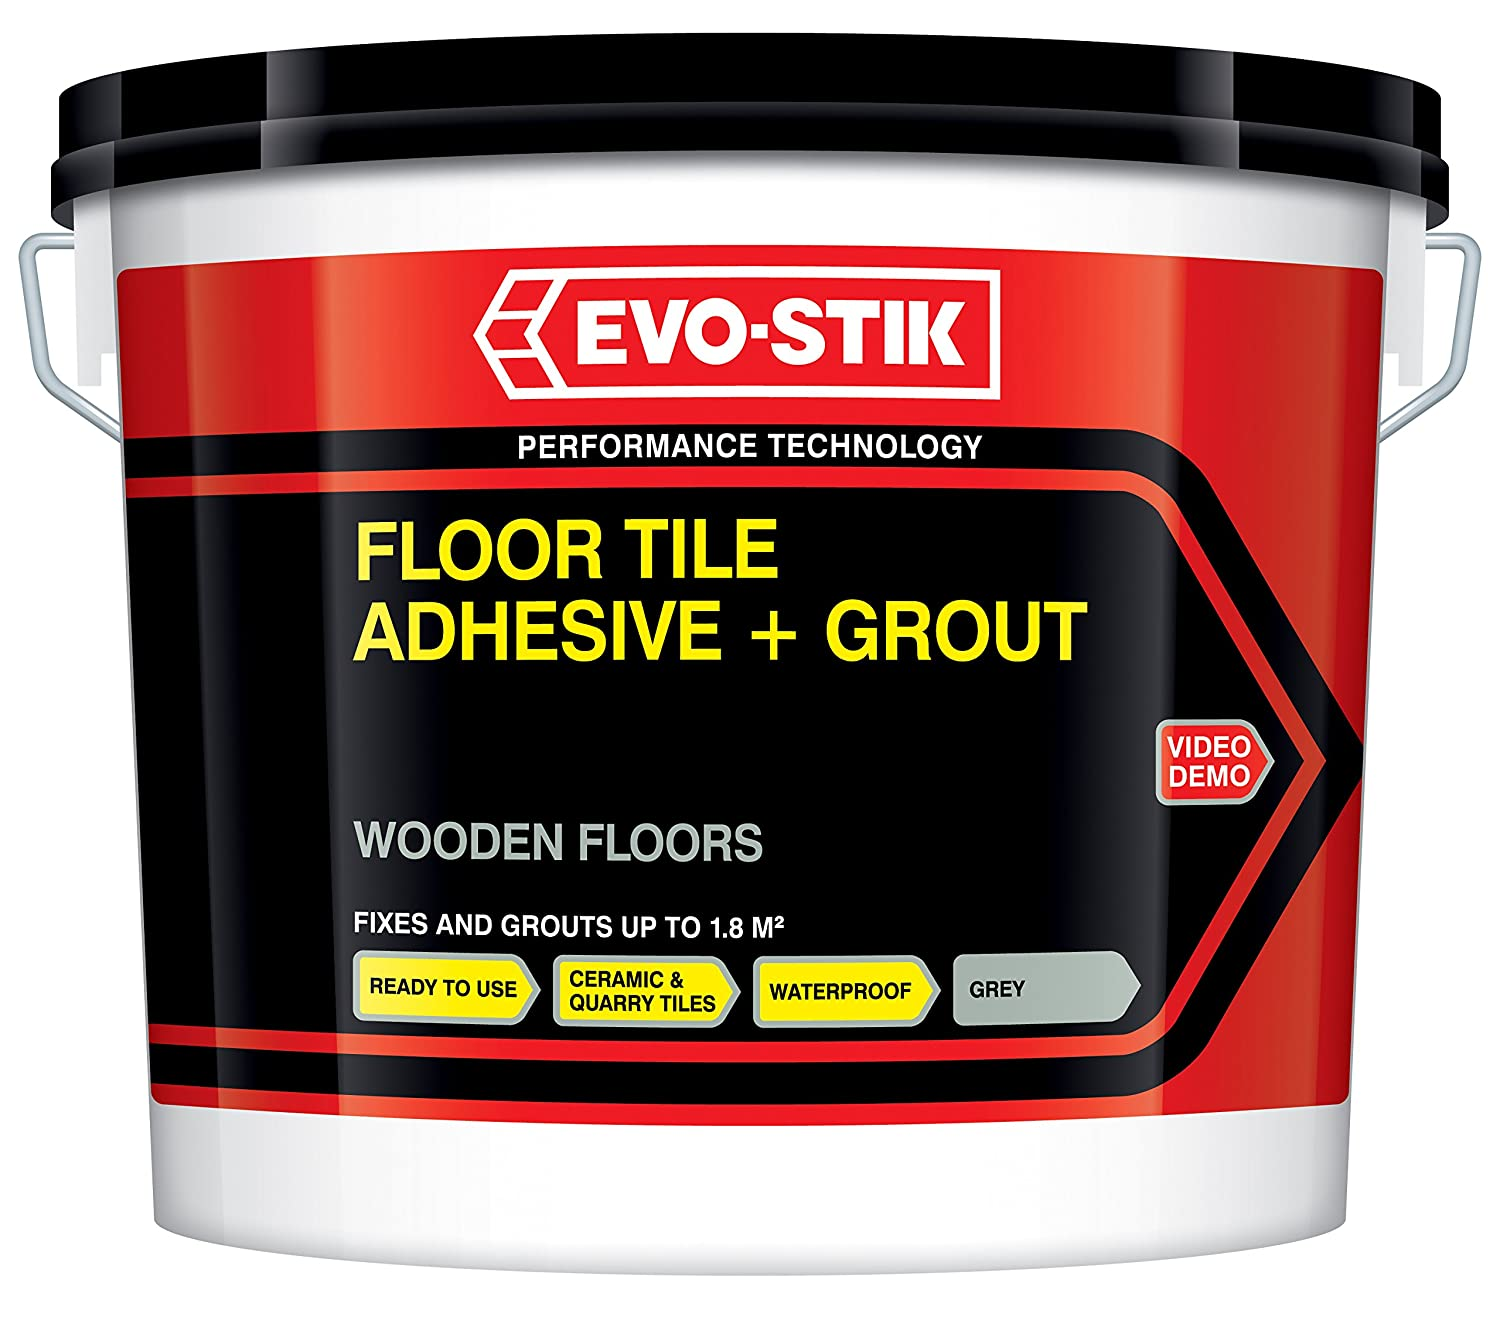 Evo stik wooden wood floor tile adhesive grout ready mixed large evo stik wooden wood floor tile adhesive grout ready mixed large 5l new 622289 amazon diy tools dailygadgetfo Gallery